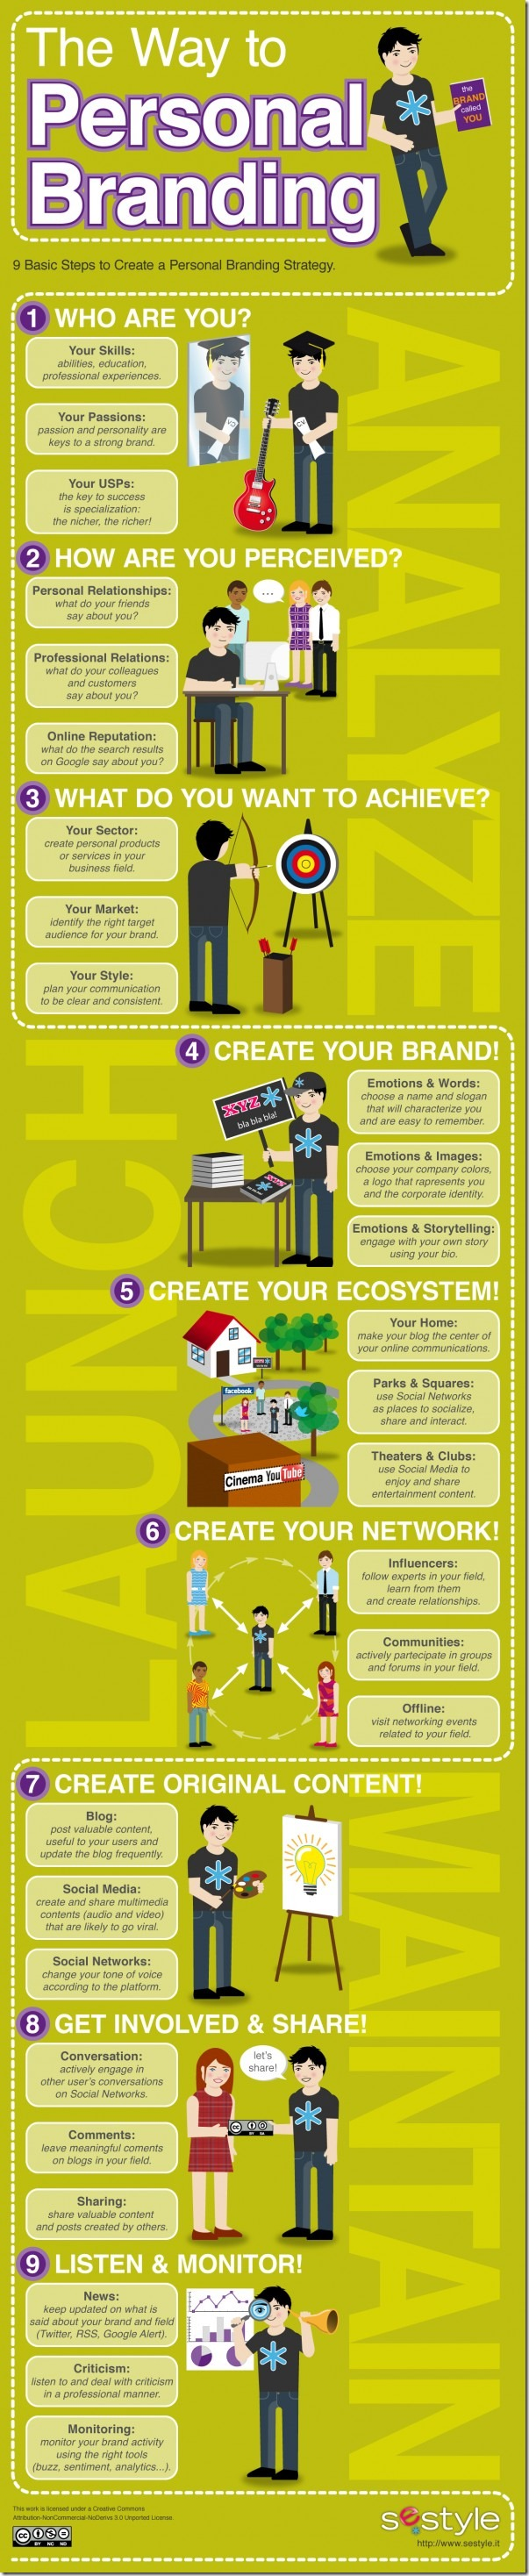 personal-branding-infographic-e1341908583405